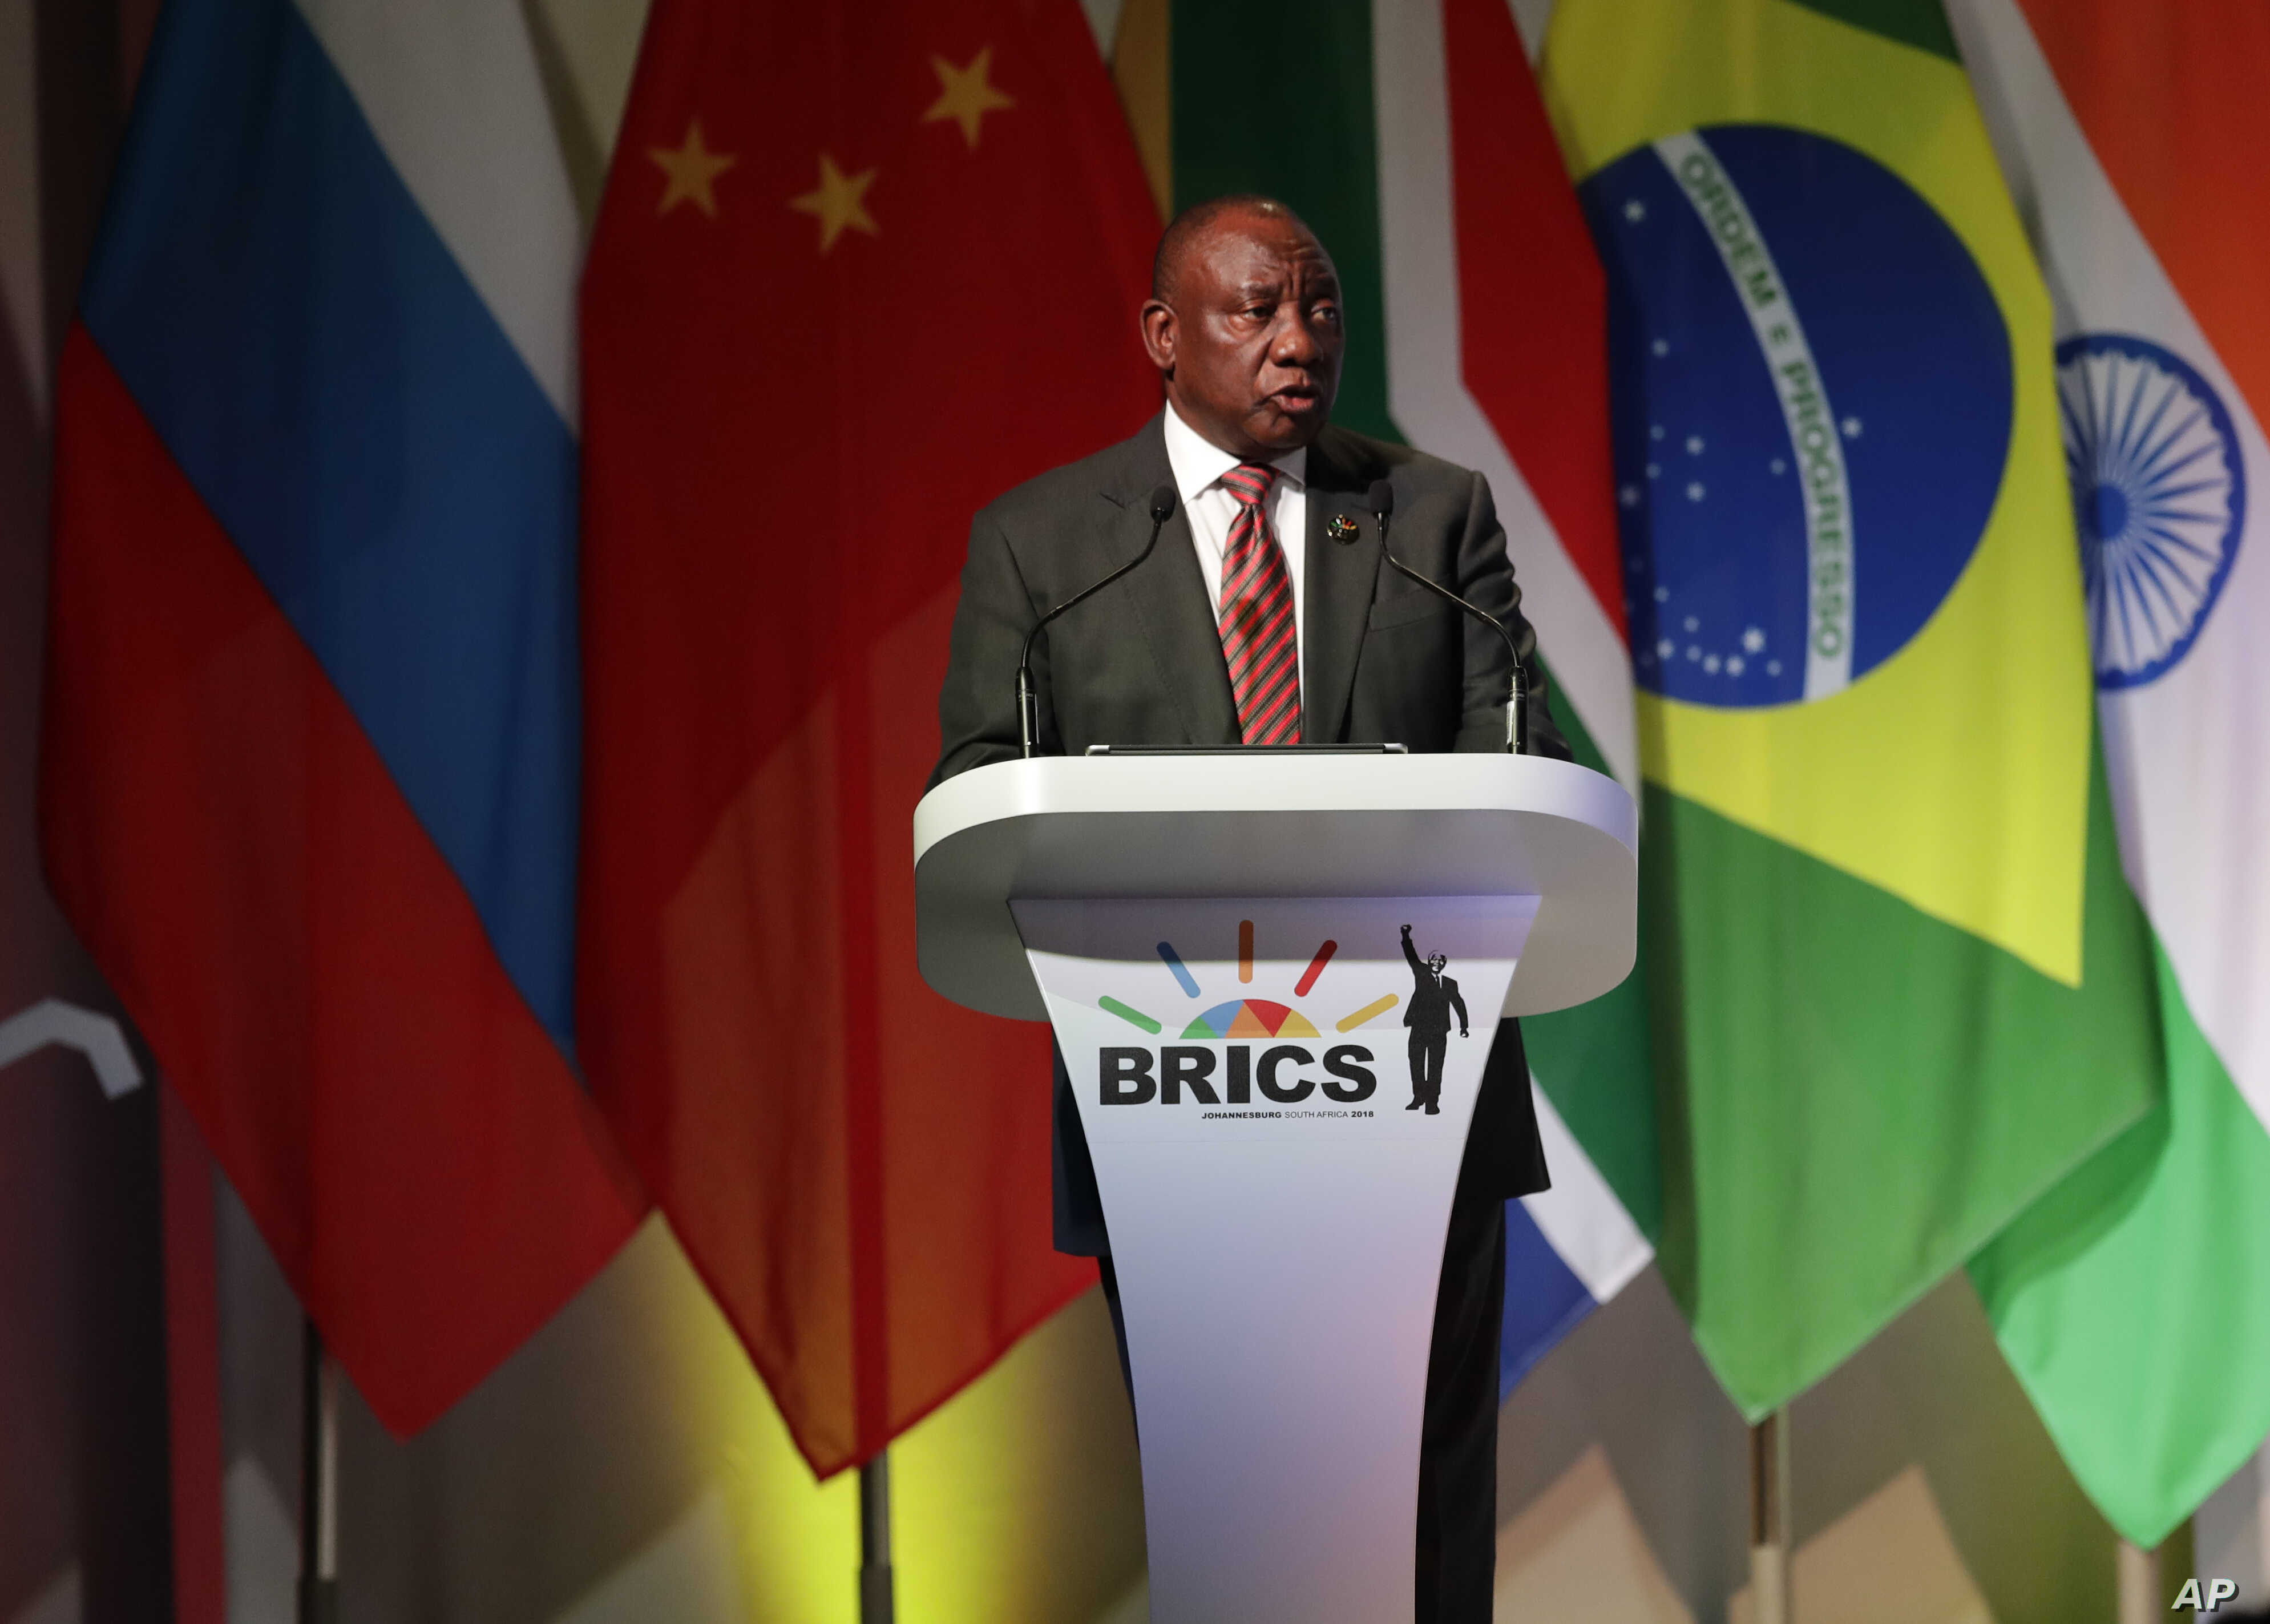 South African President Cyril Ramaphosa speaks during his opening of the BRICS Summit in JOhannesburg, July 25 2018. The summit runs through Friday with various heads of BRICS attending.